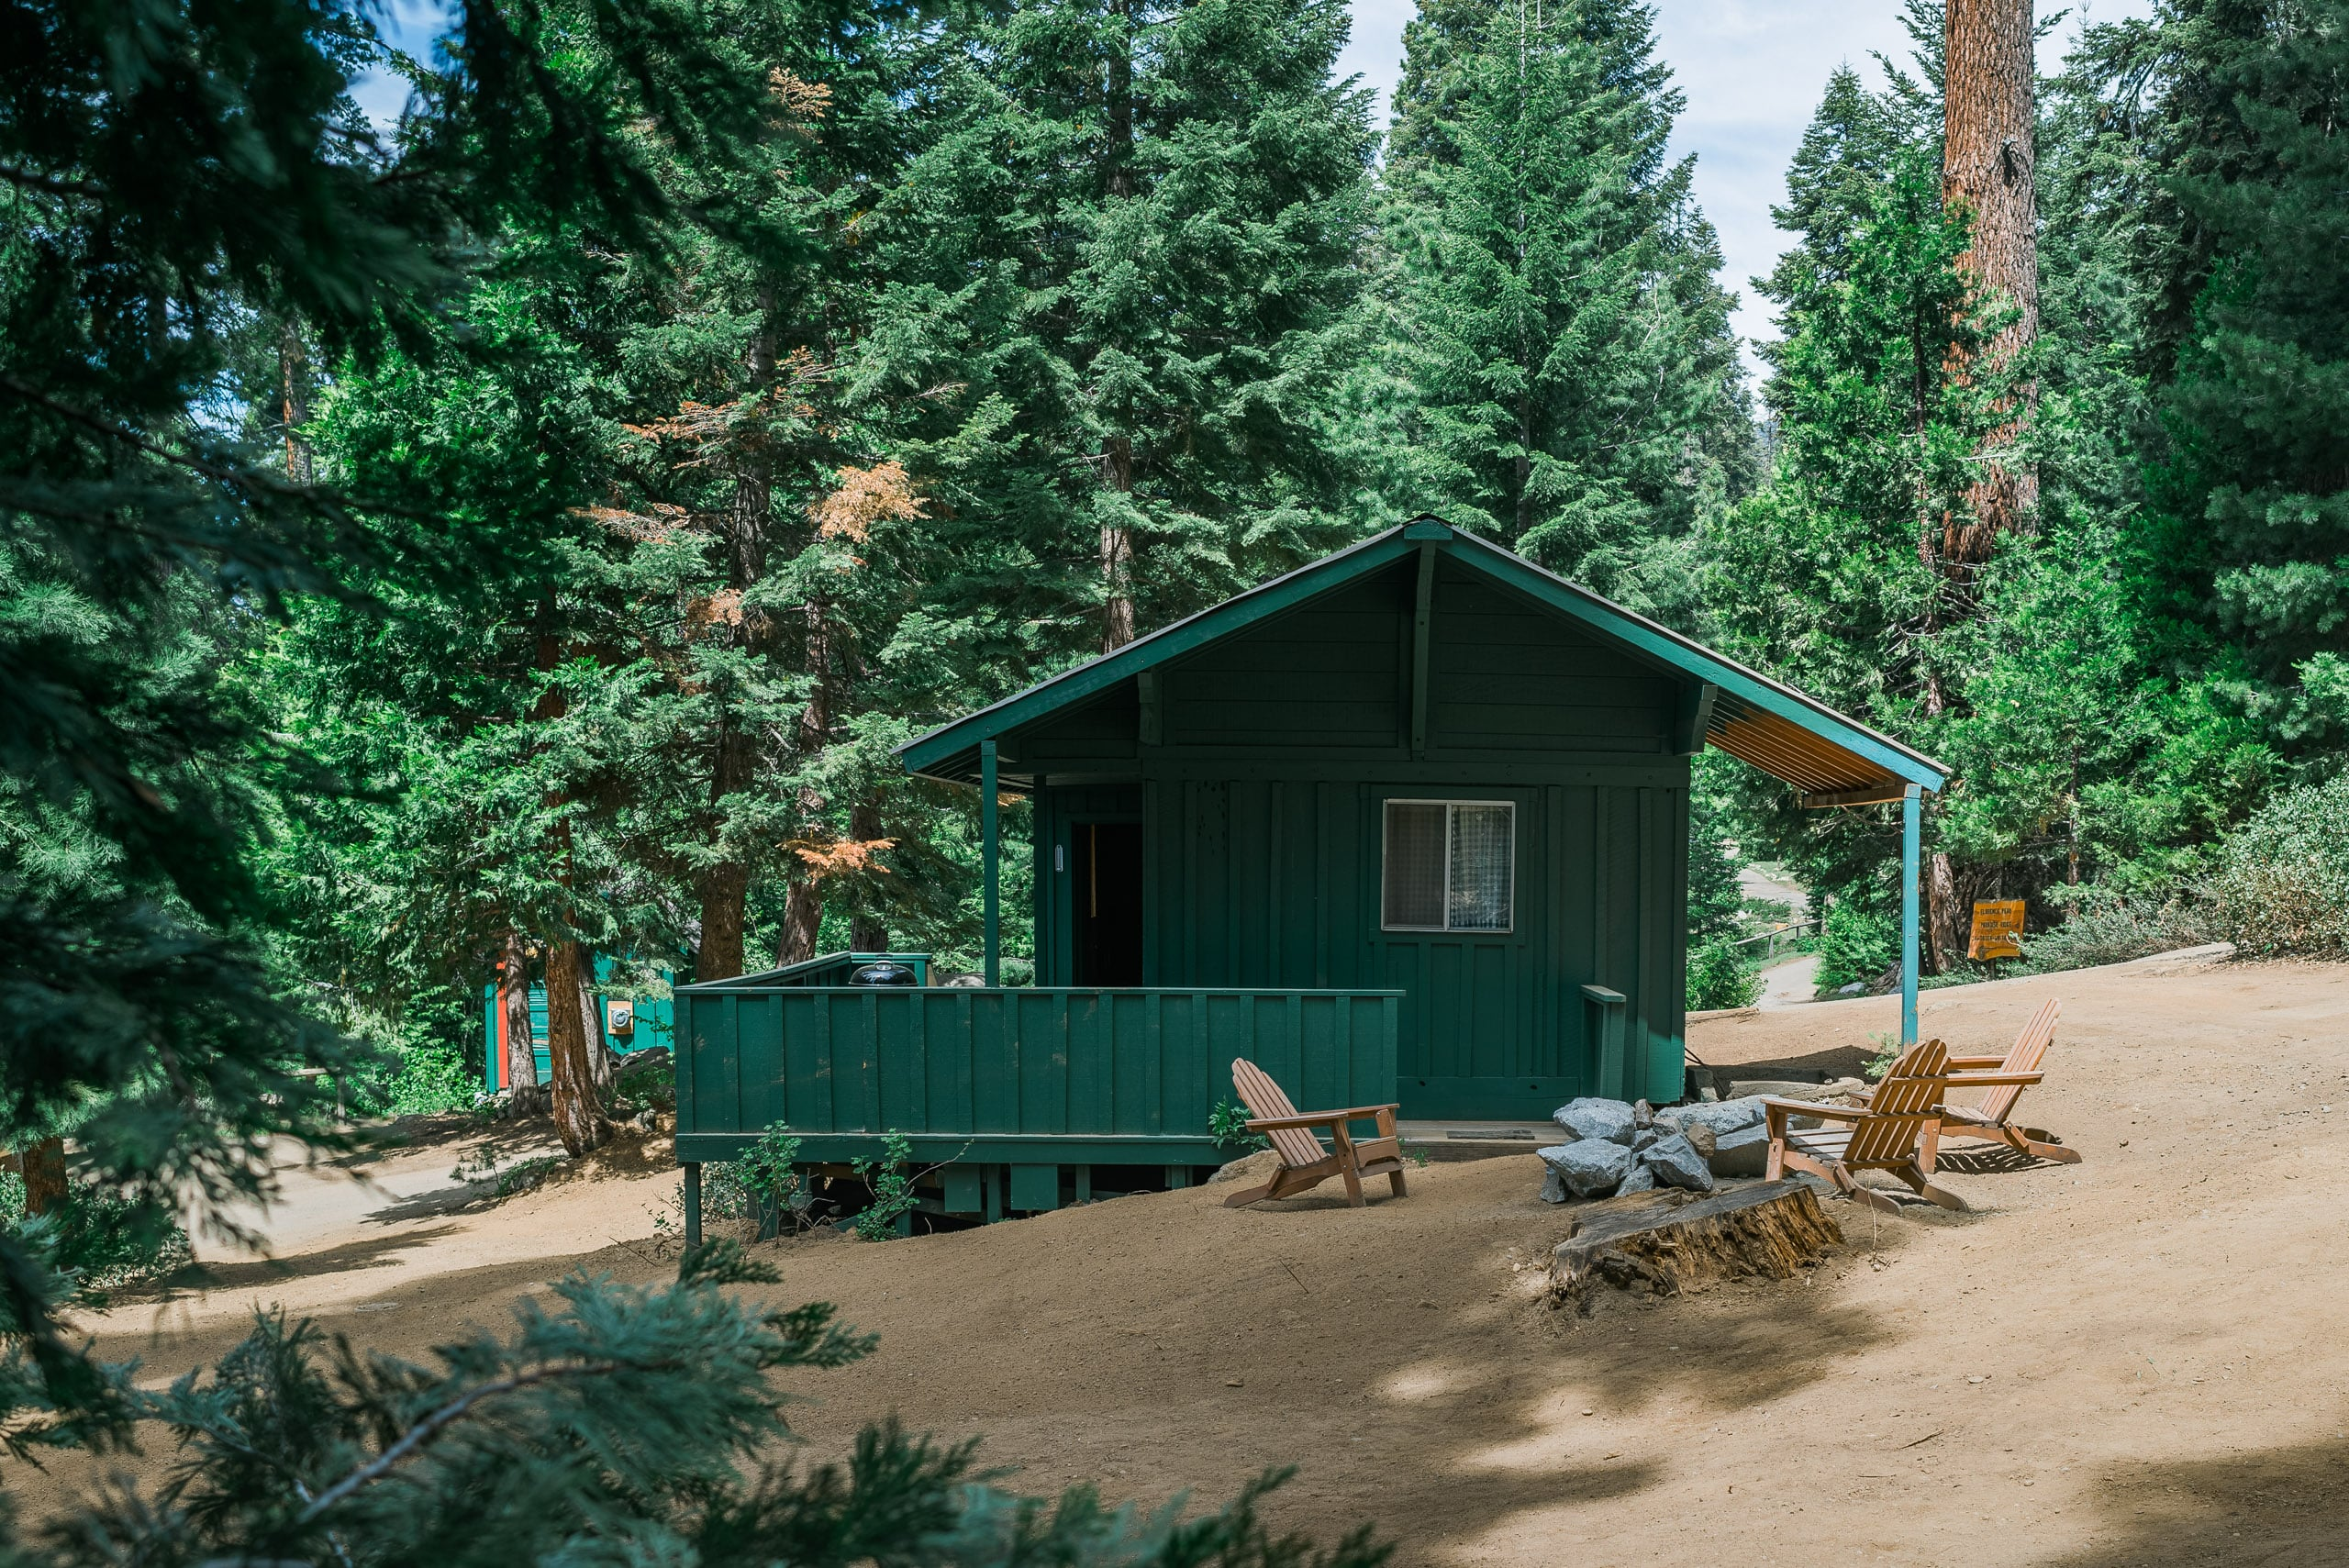 road county in sequoia giants this tulare national forest pinterest pin yellow cabins like my brick